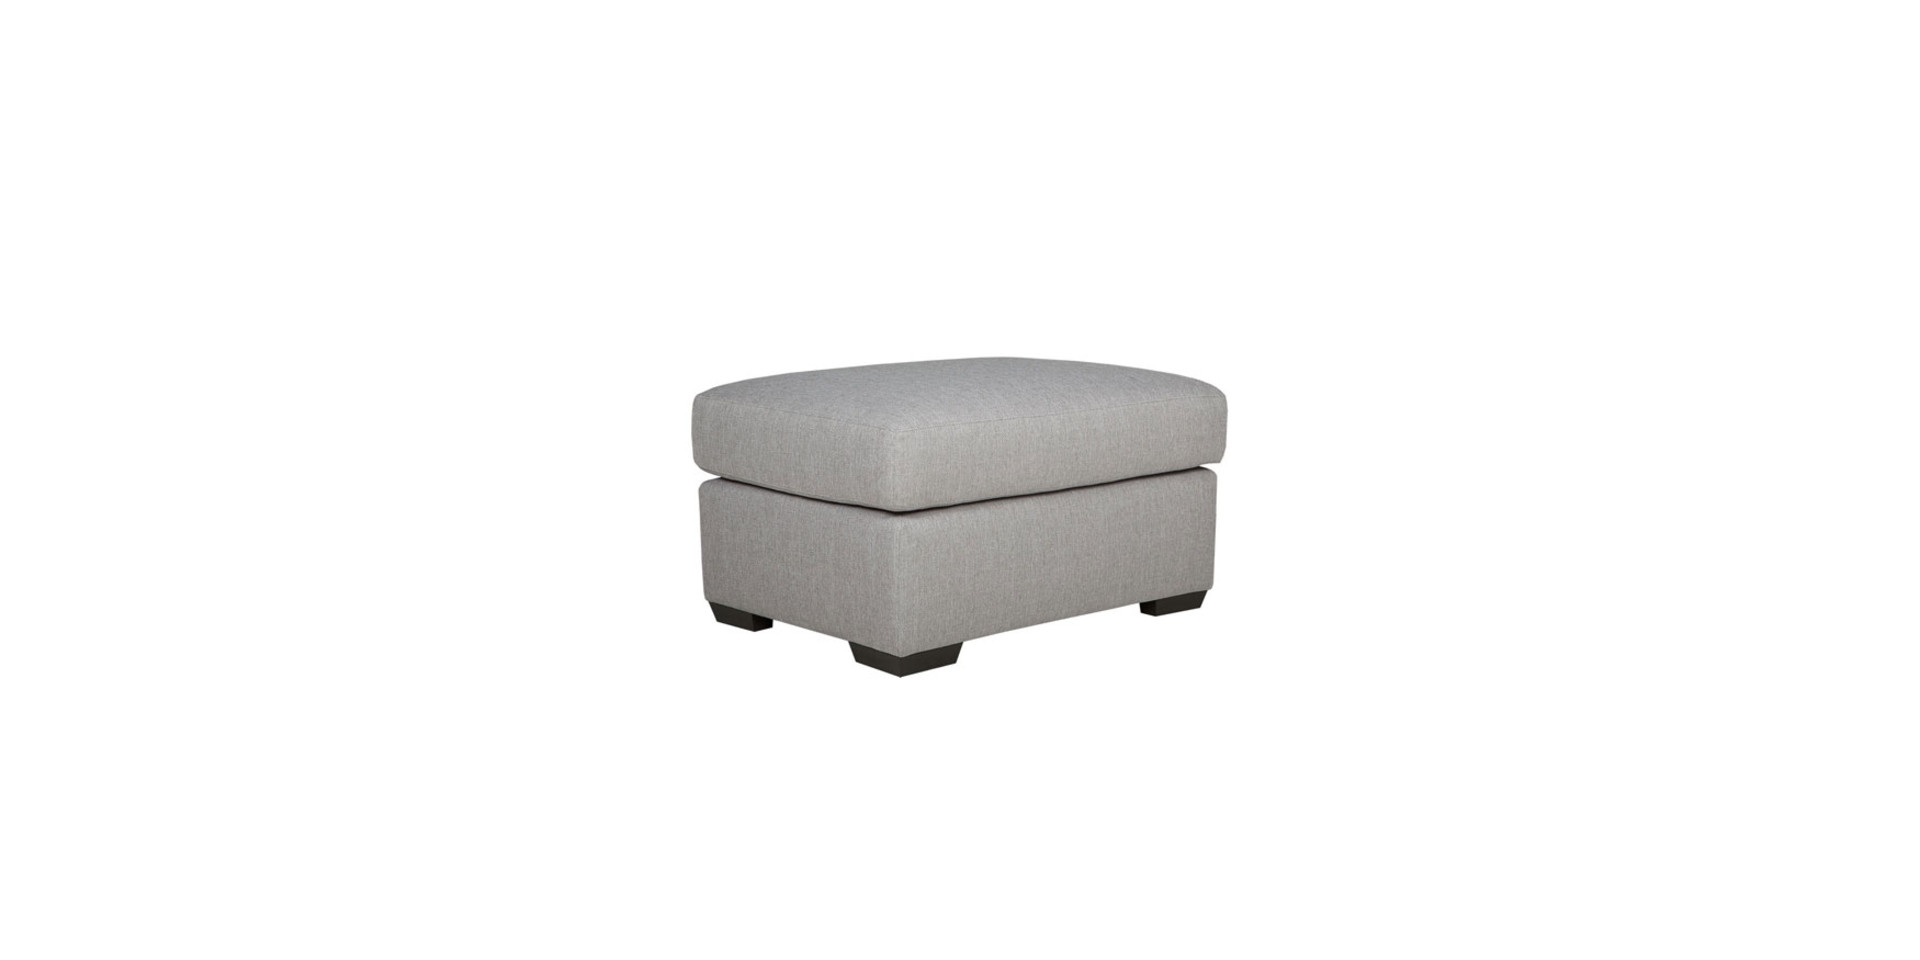 sits-boston-pouf-footstool_cedros8_light_grey_3